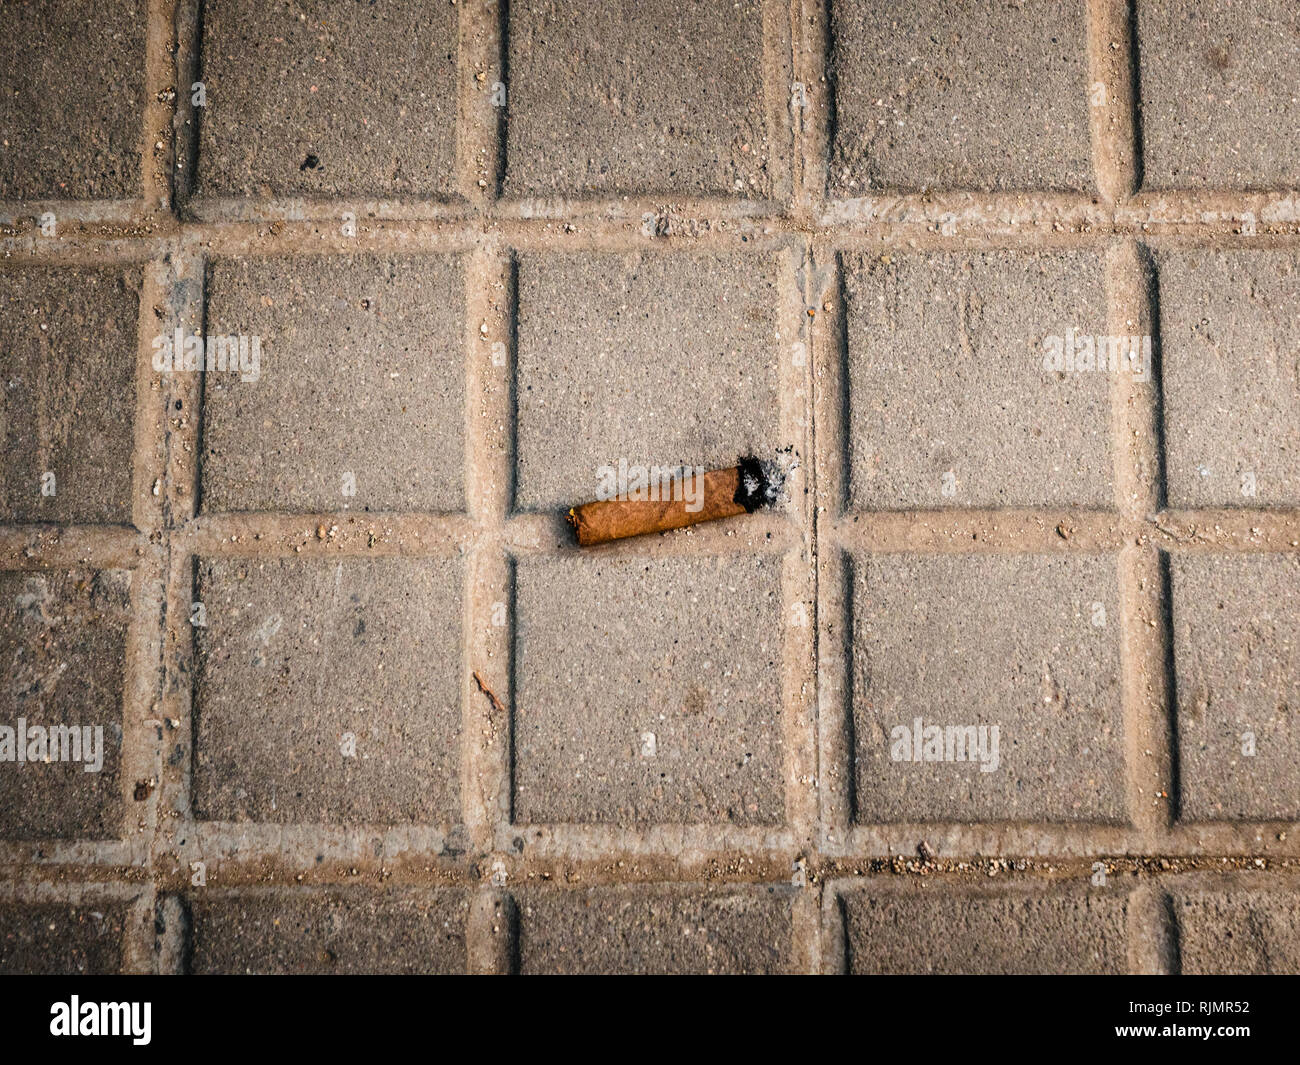 Above view of cuban cigar stub on gray concrete pavement - Stock Image